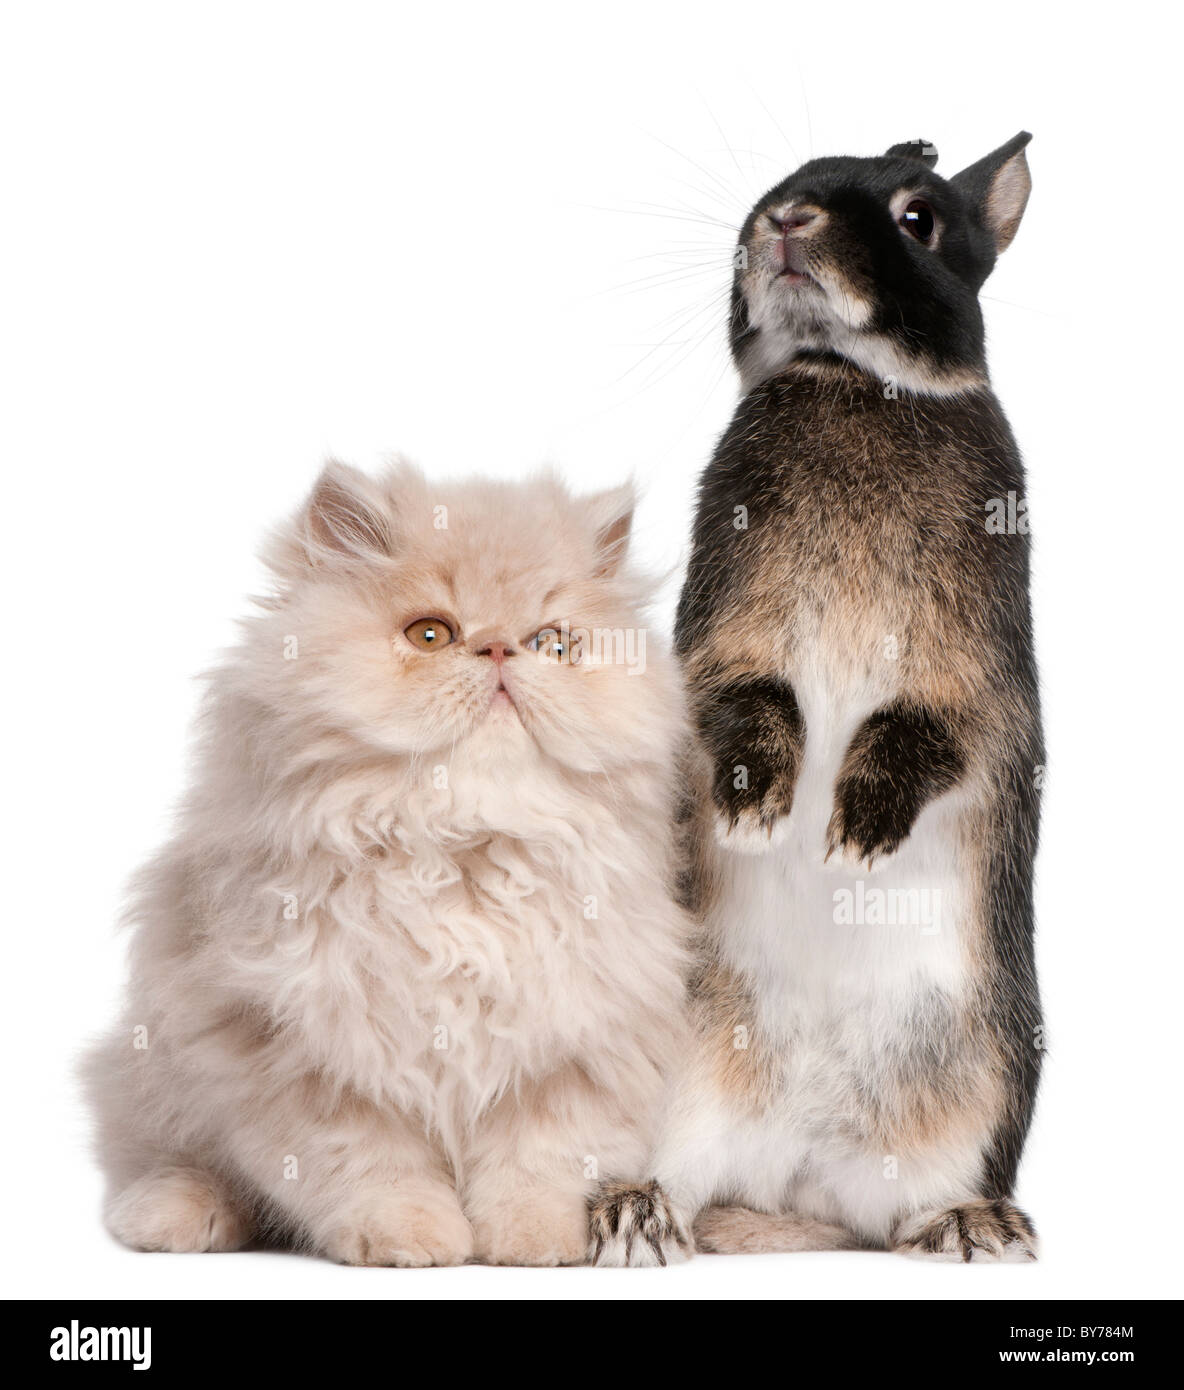 Young Persian cat and rabbit in front of white background - Stock Image